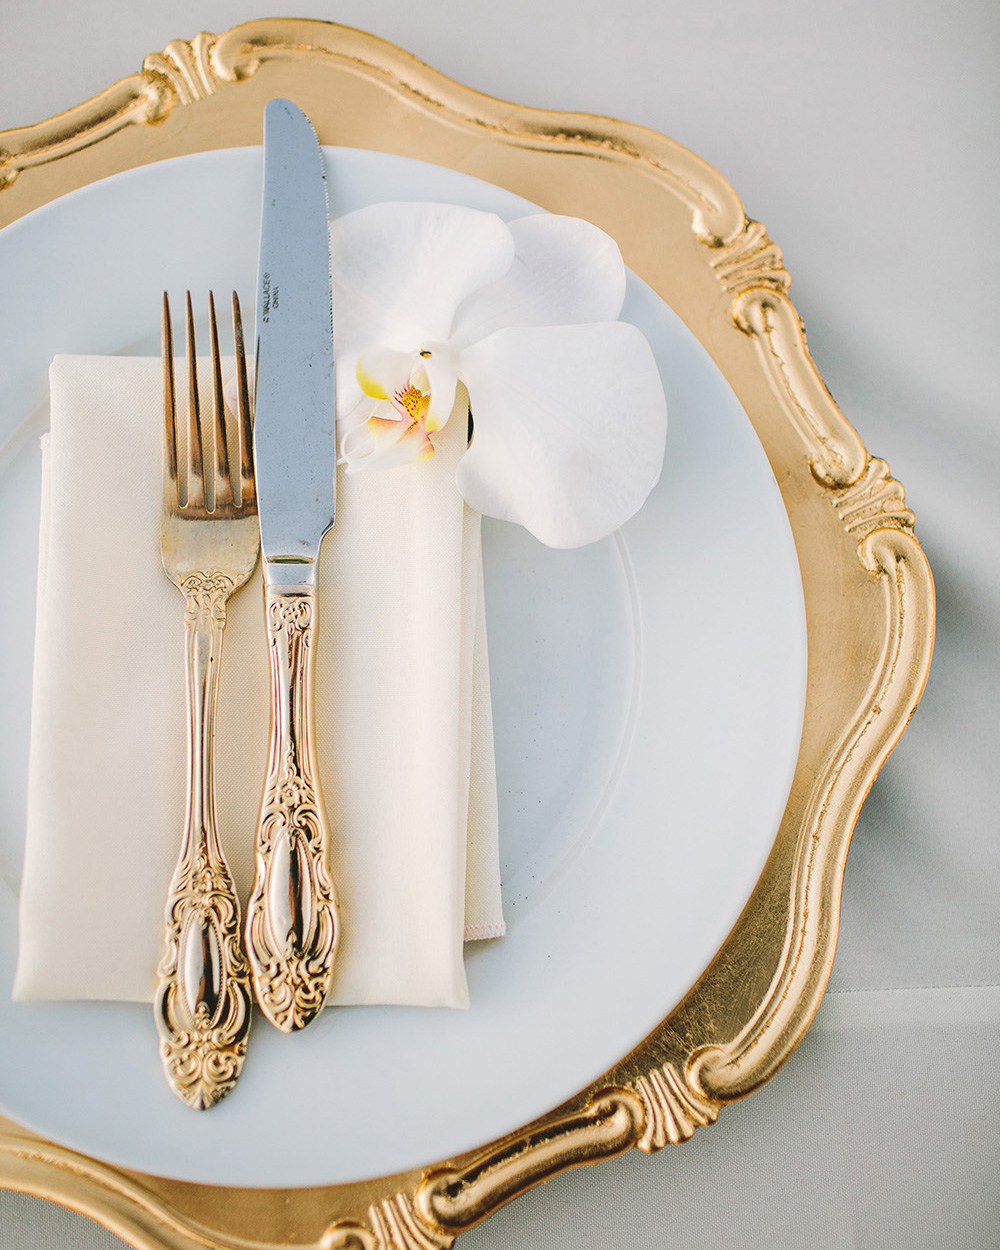 glamorous wedding ideas gold and white table setting